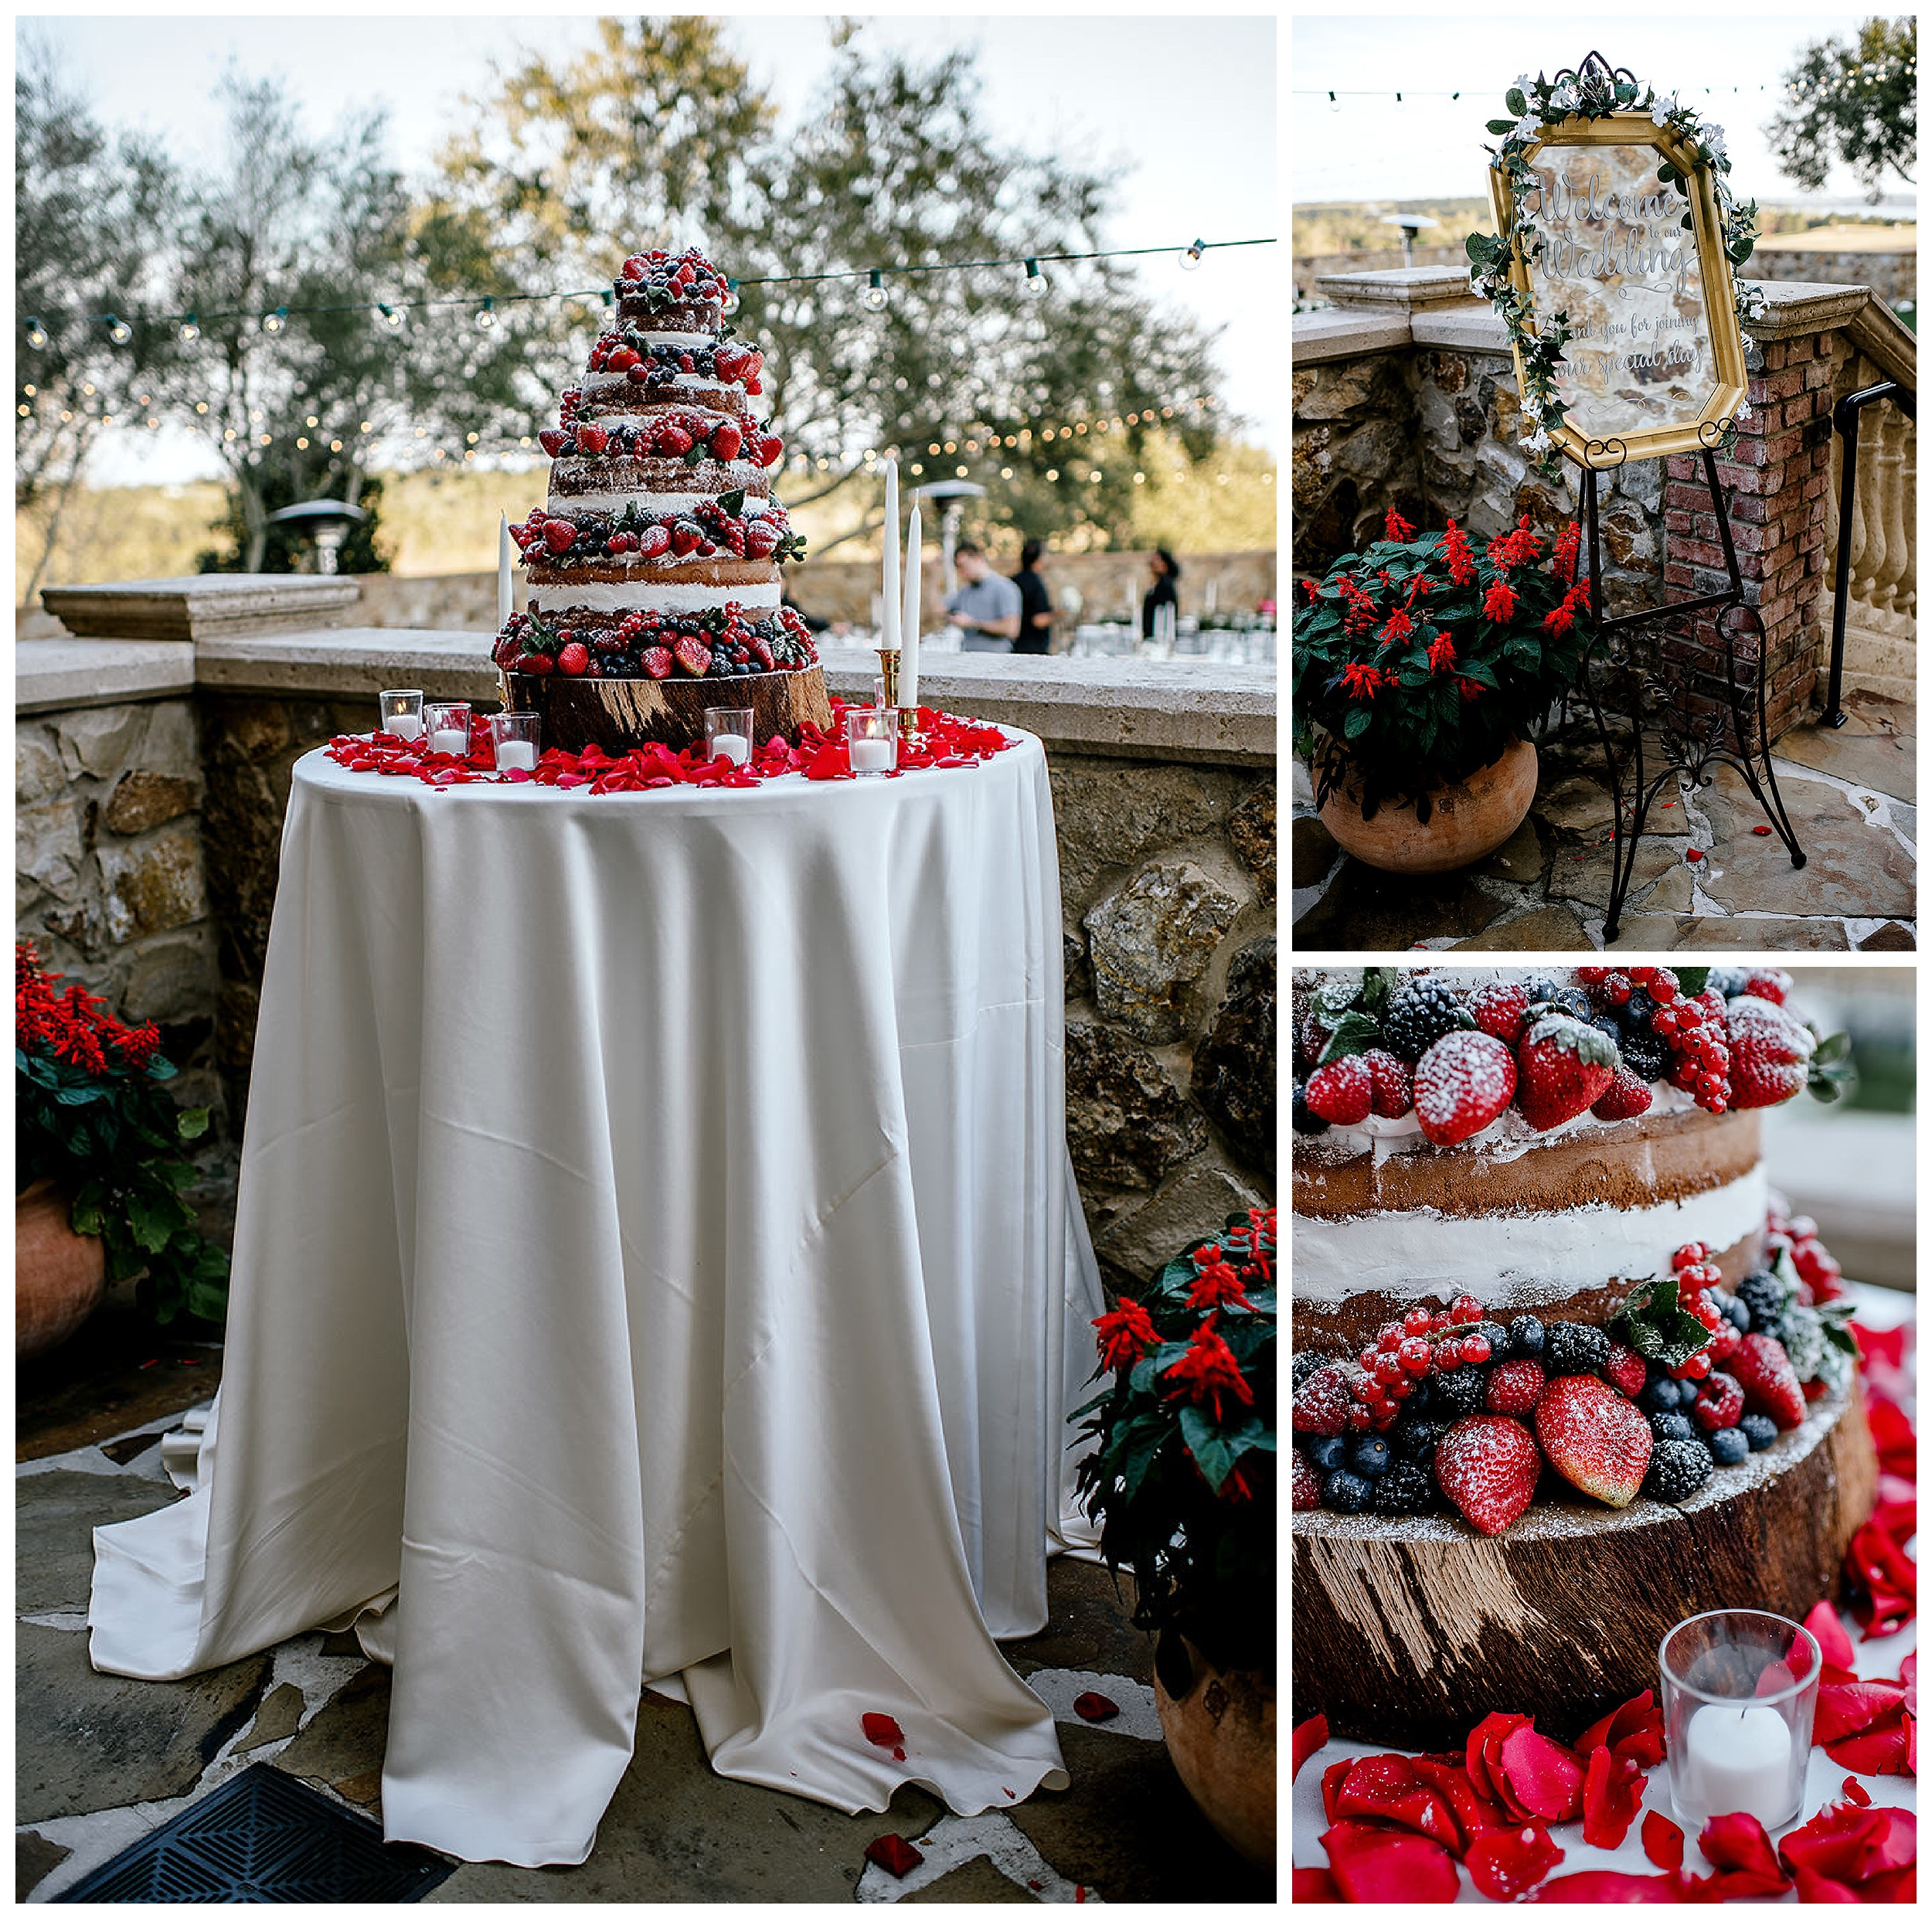 Beautiful naked wedding cake filled with fruit, with red rose petals all around it